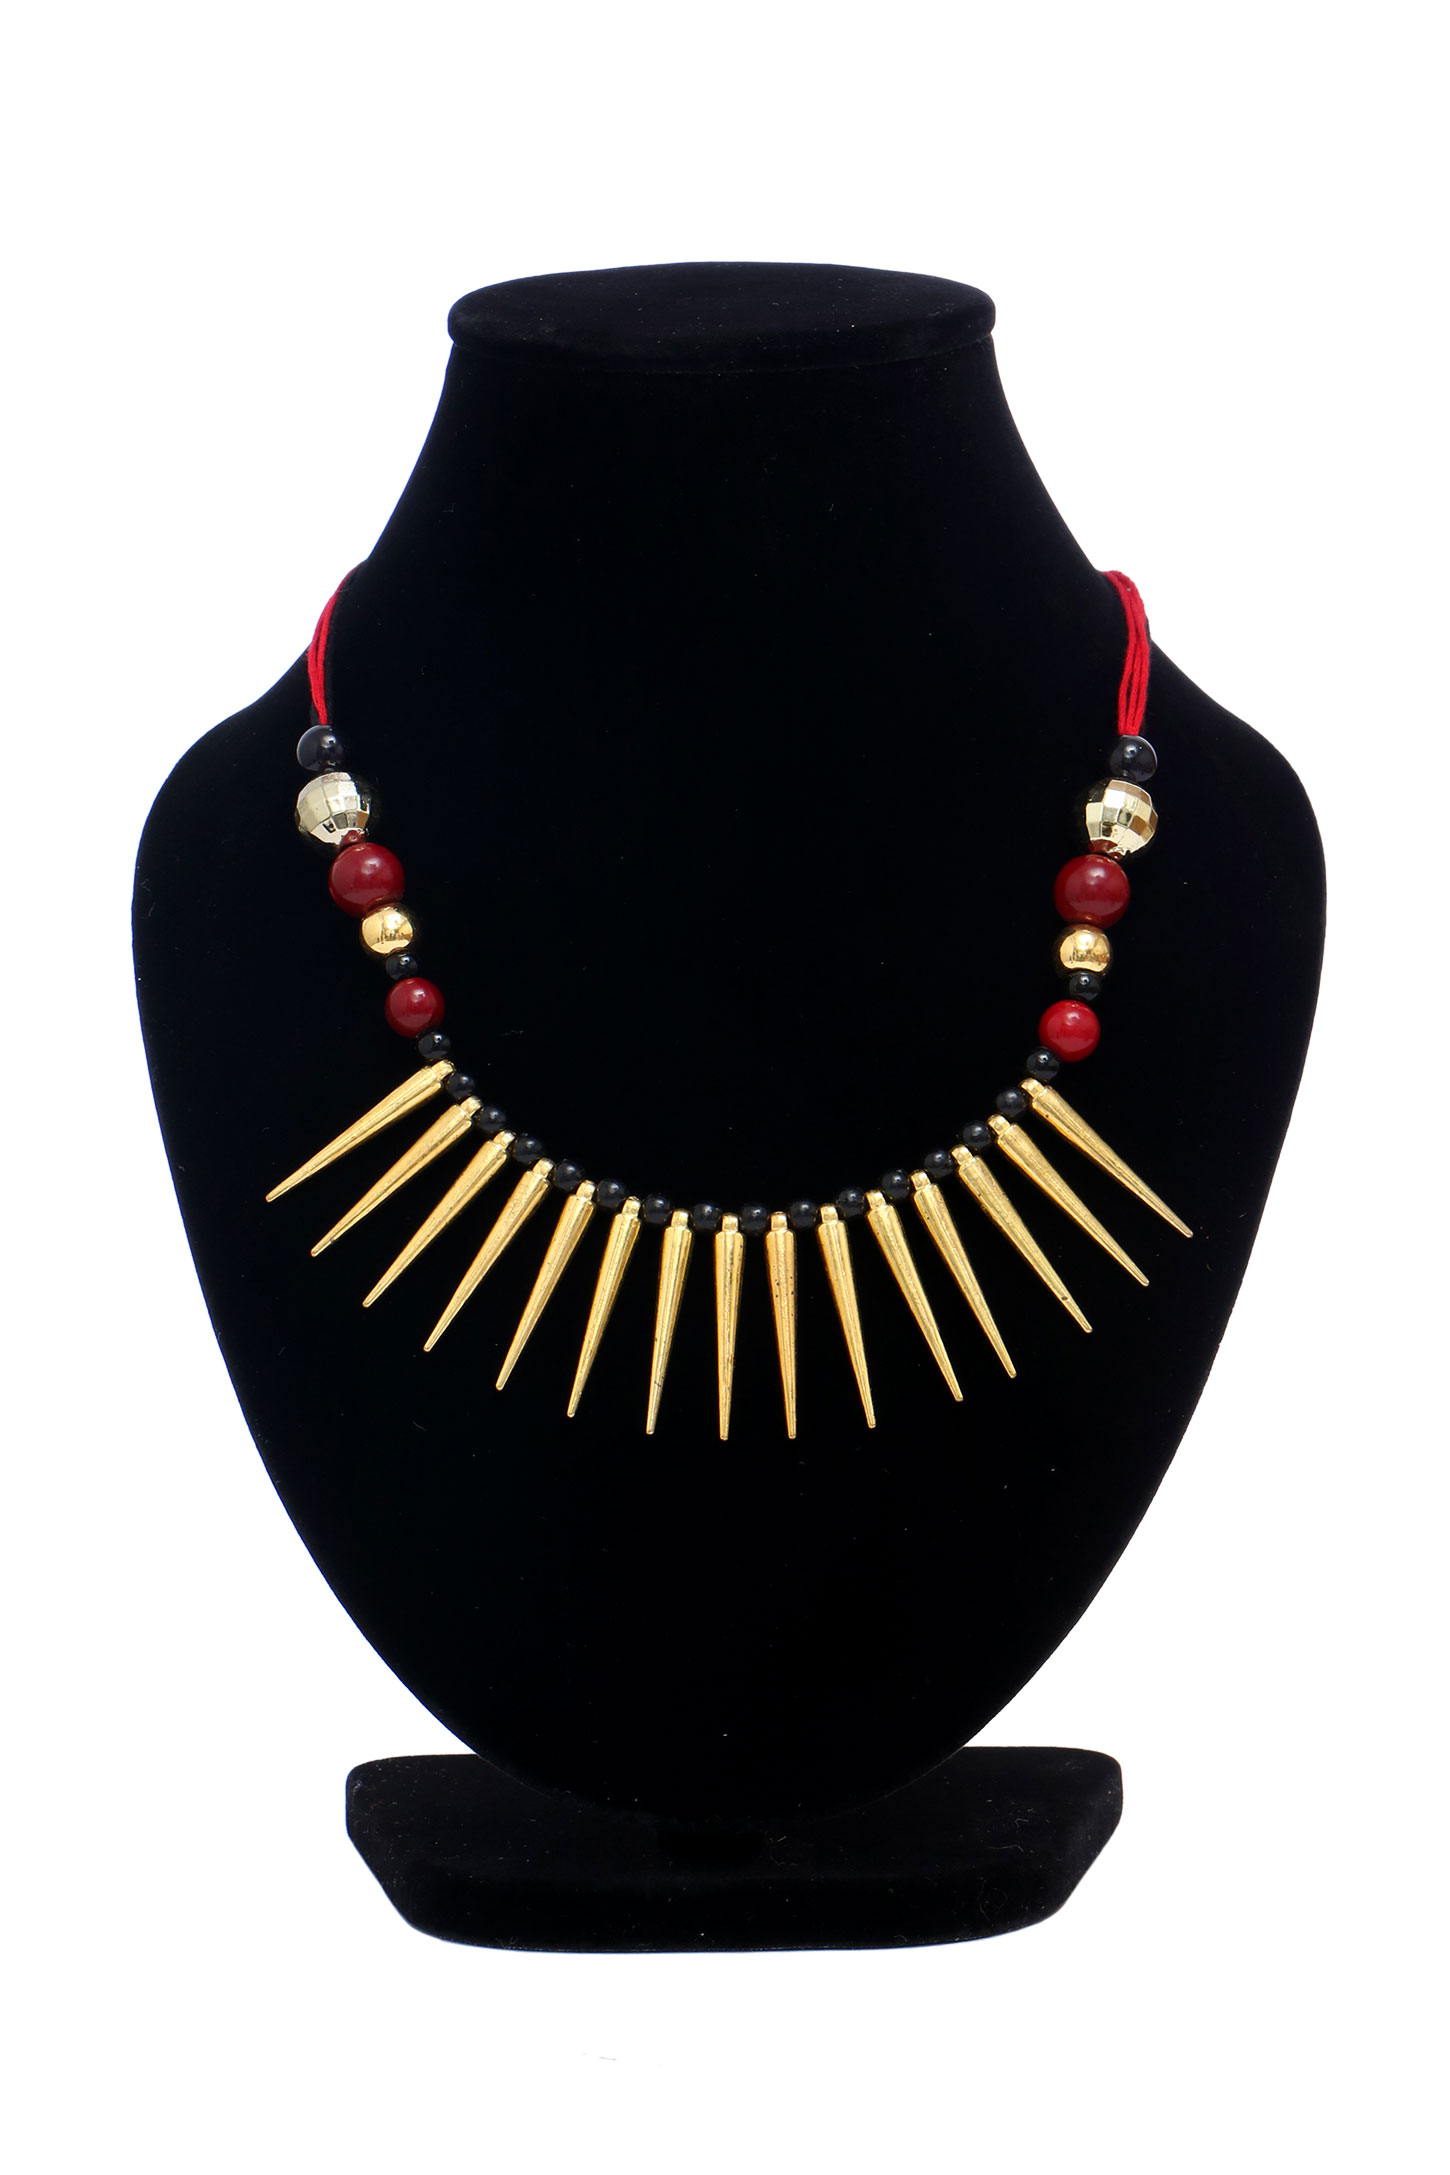 powered online by original of radical products storenvy crimson store may sun big necklace